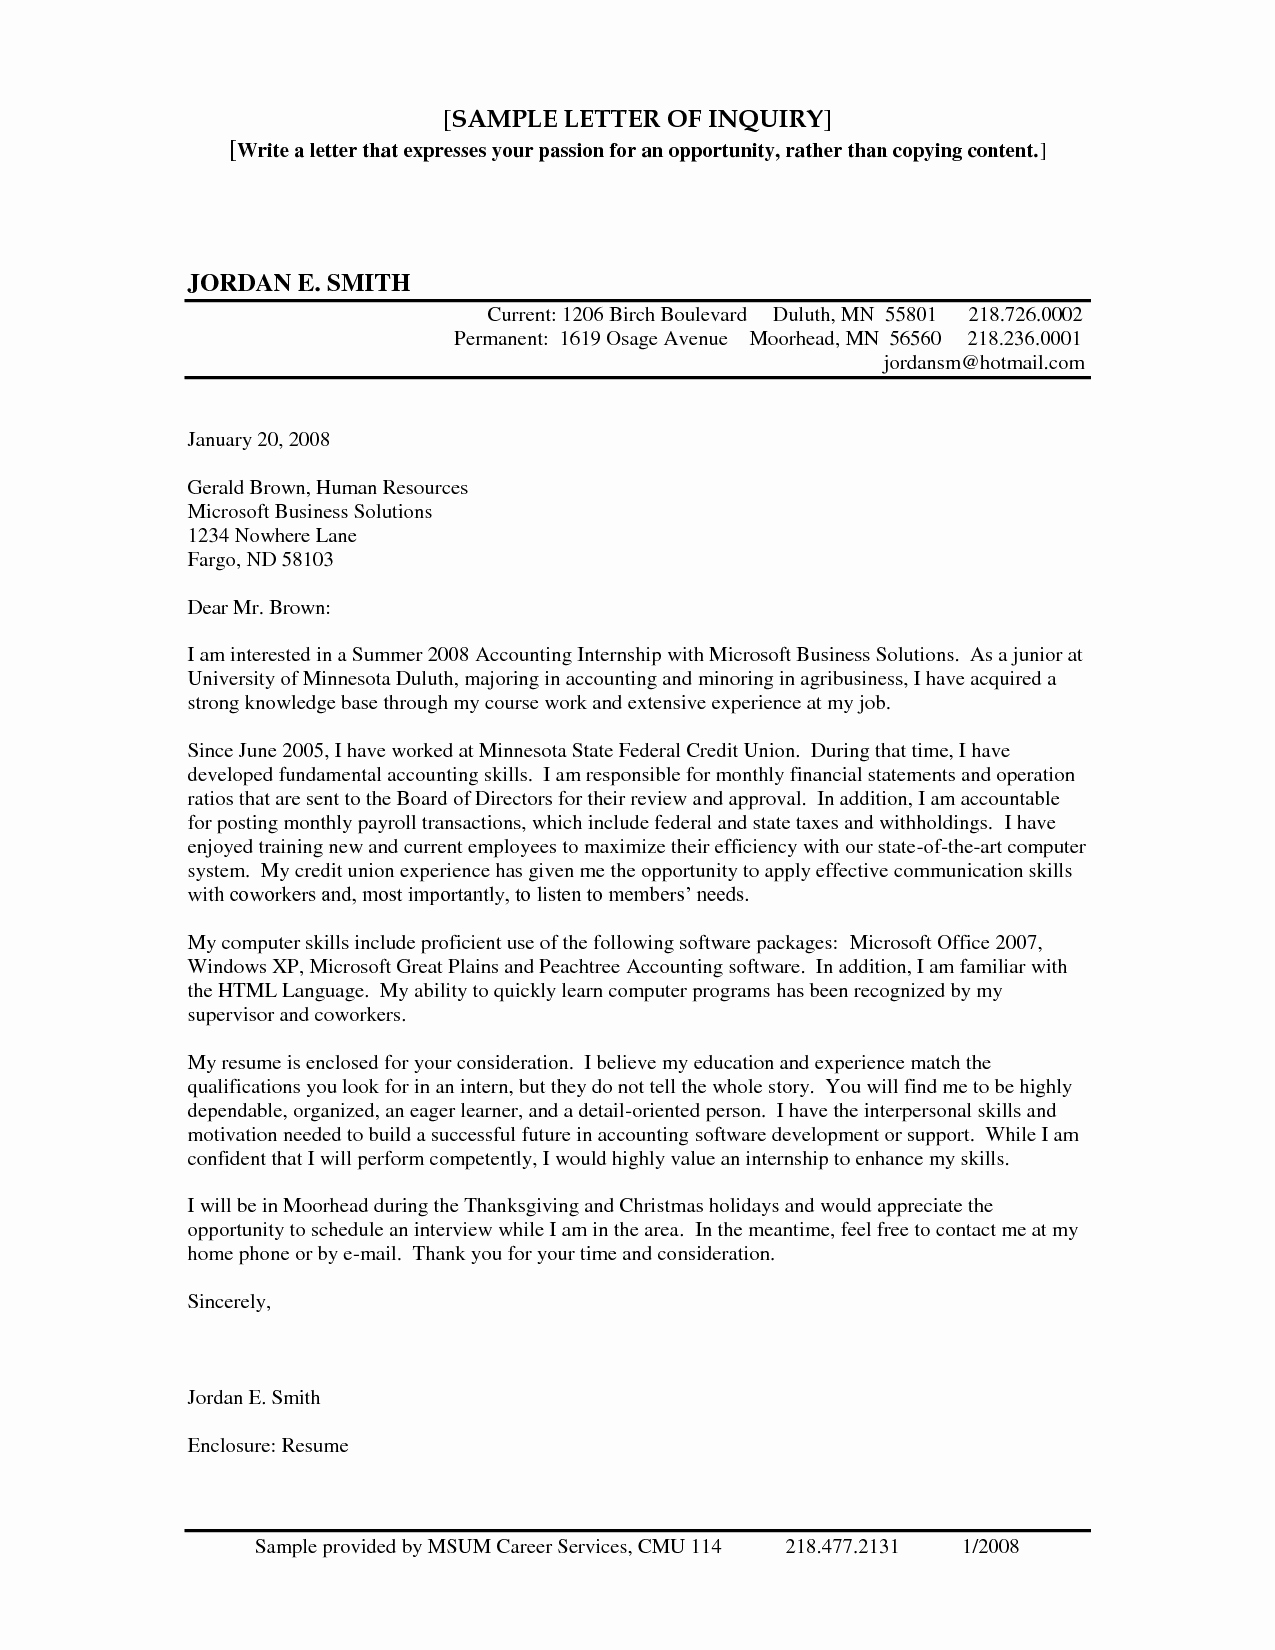 Letter Of Inquiry Template Awesome Best S Of University Templates for Letter Inquiry